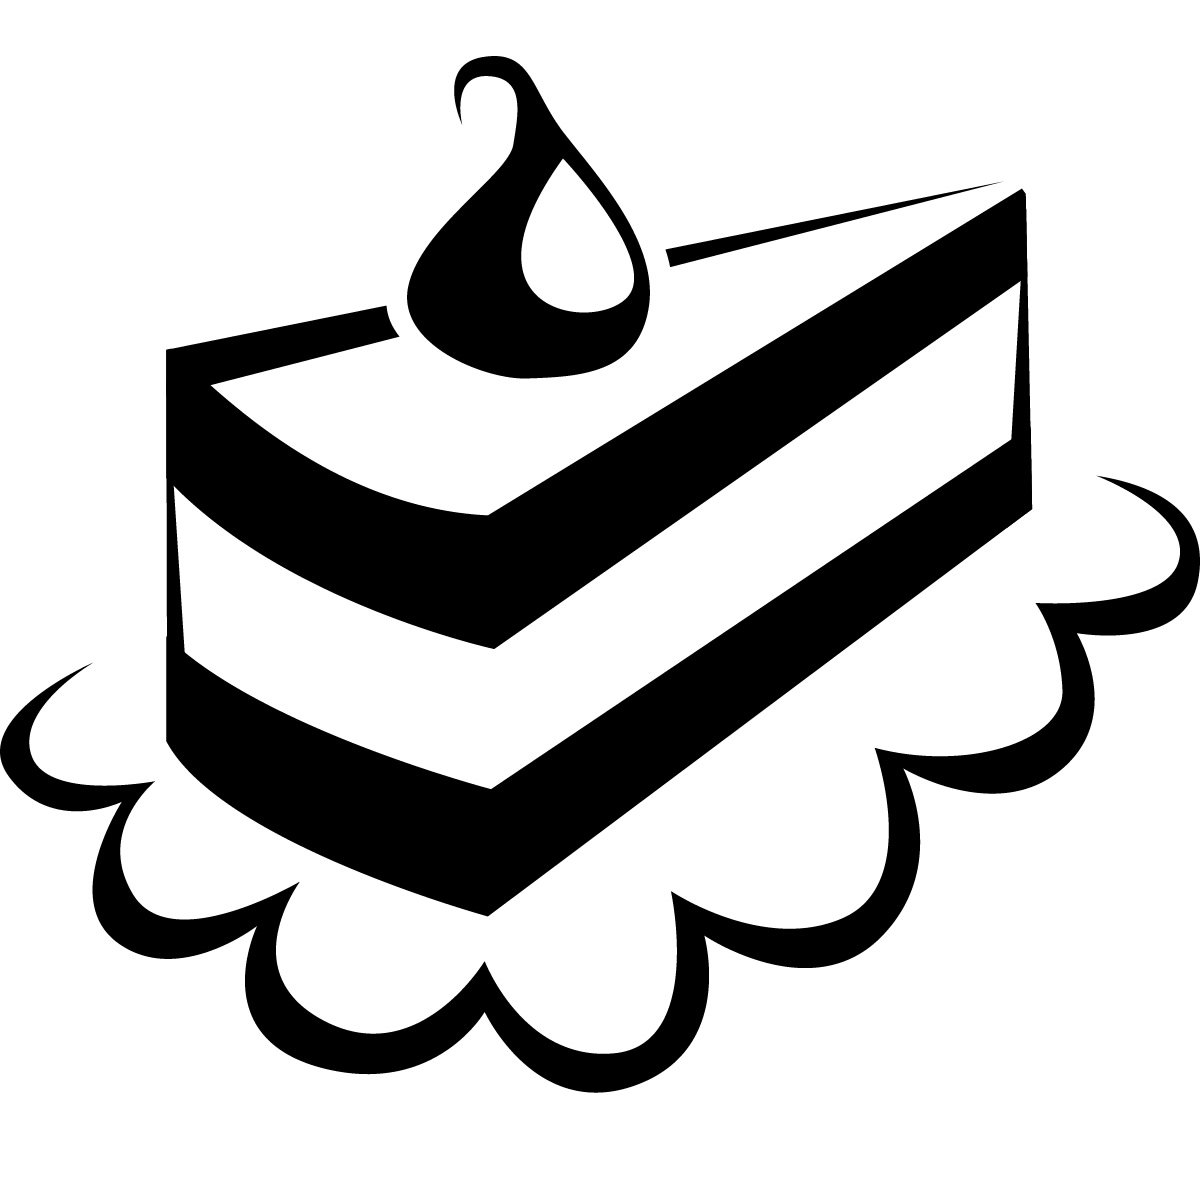 Cake Clip Art Black And White - ClipArt Best